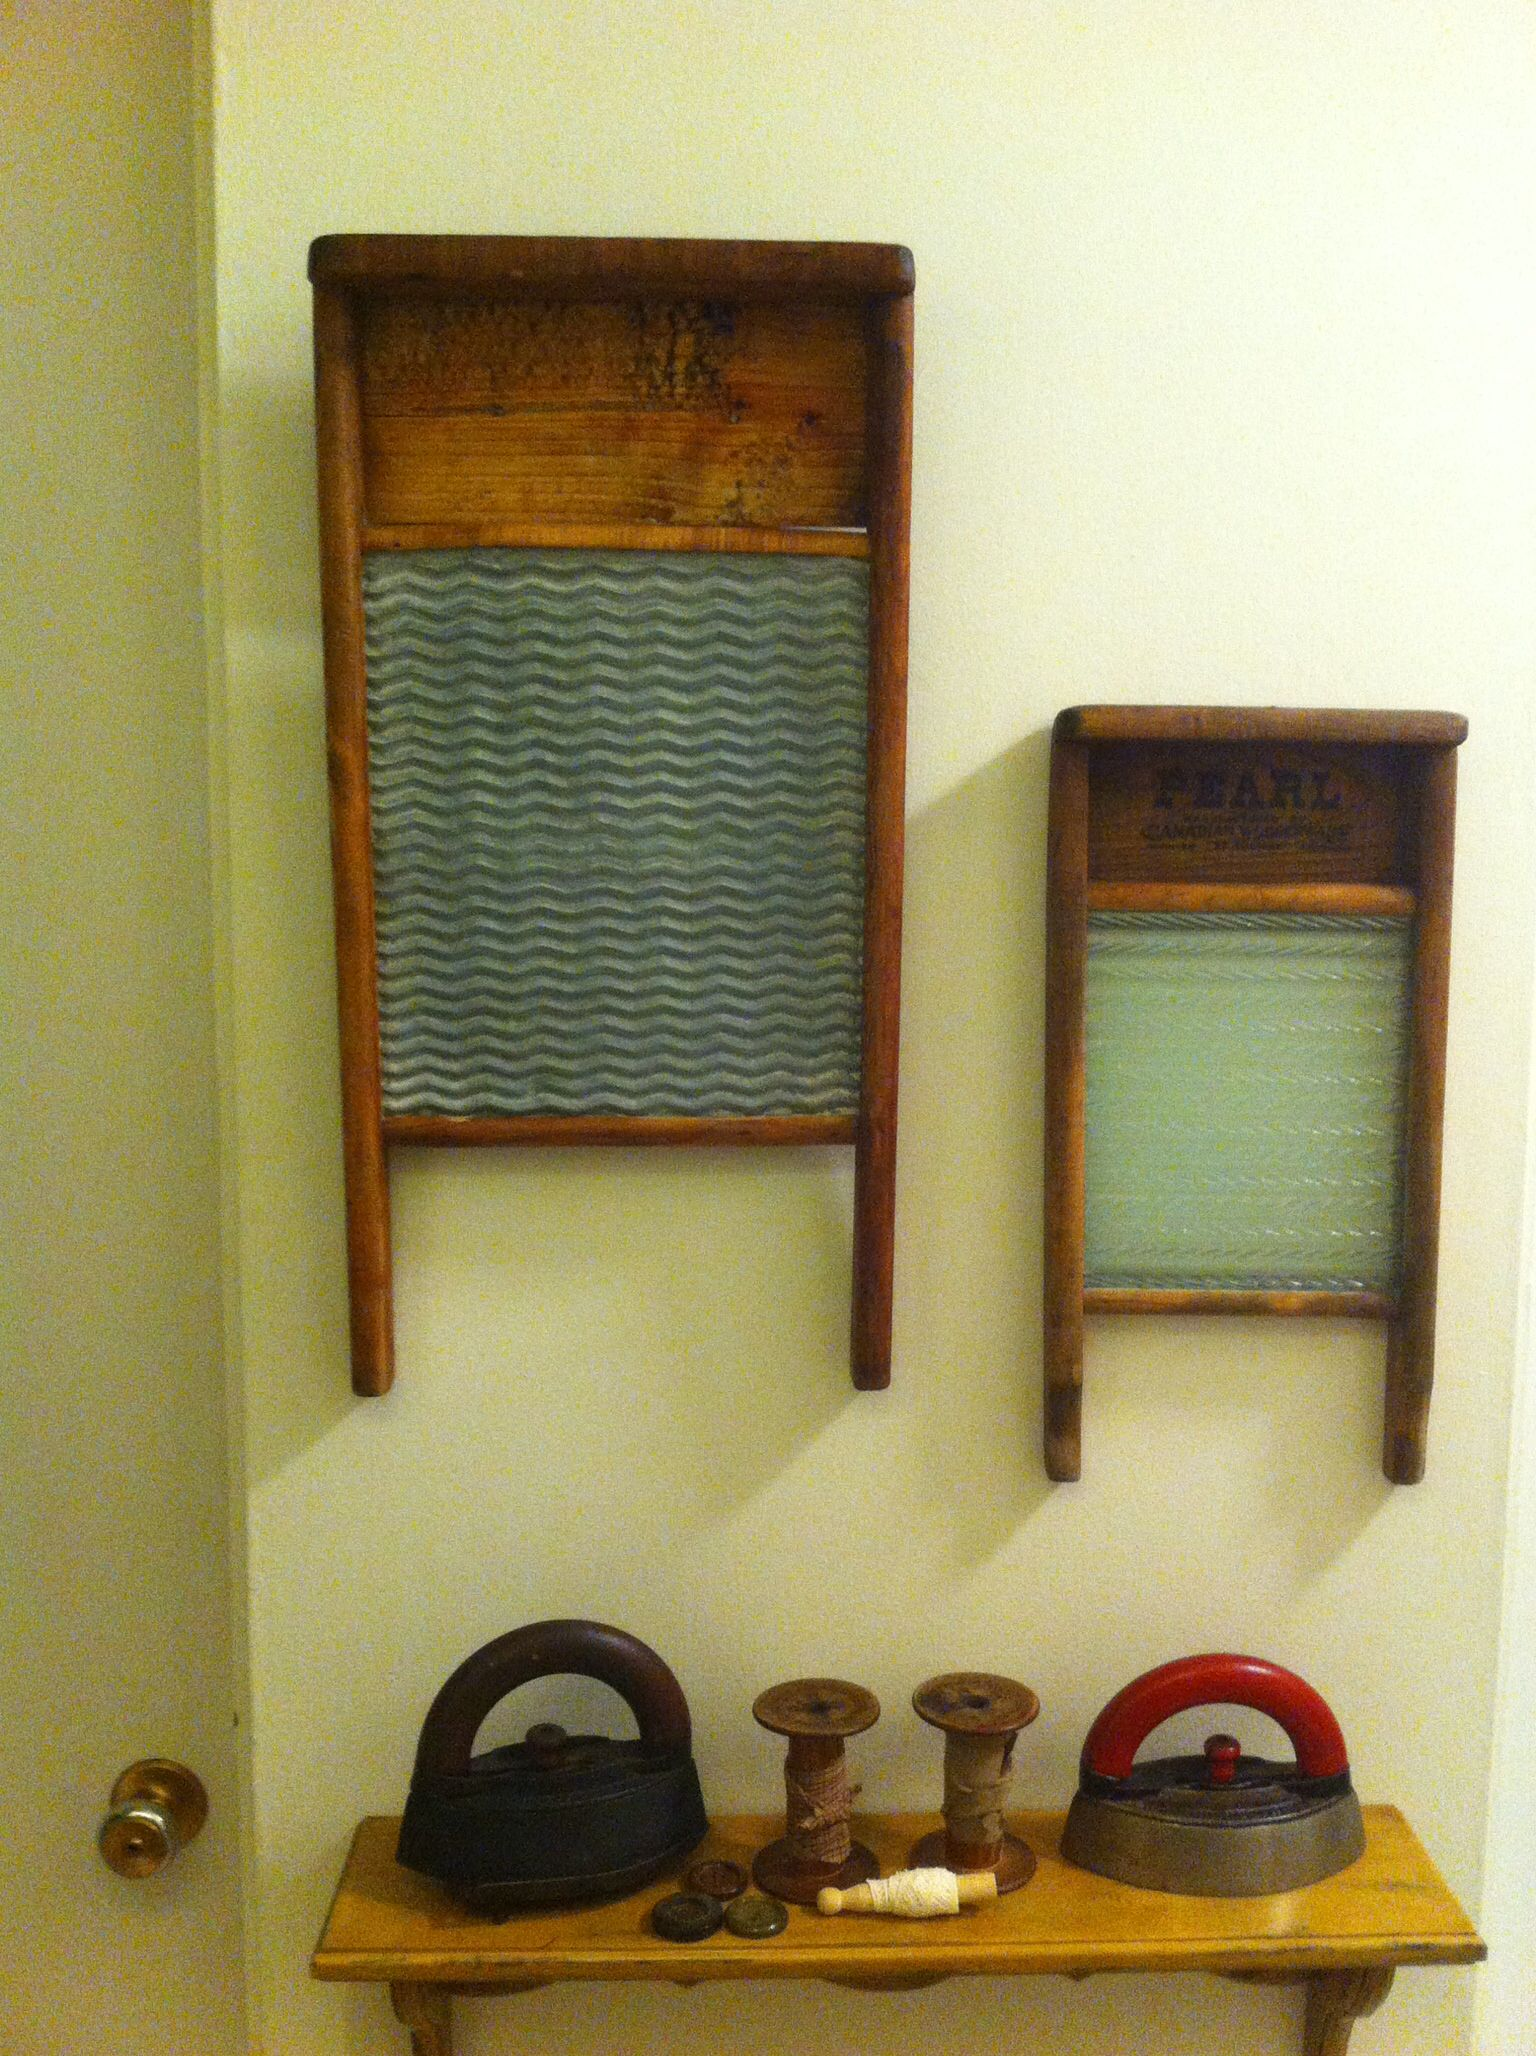 I like this idea for wall decor in the laundry room laundry